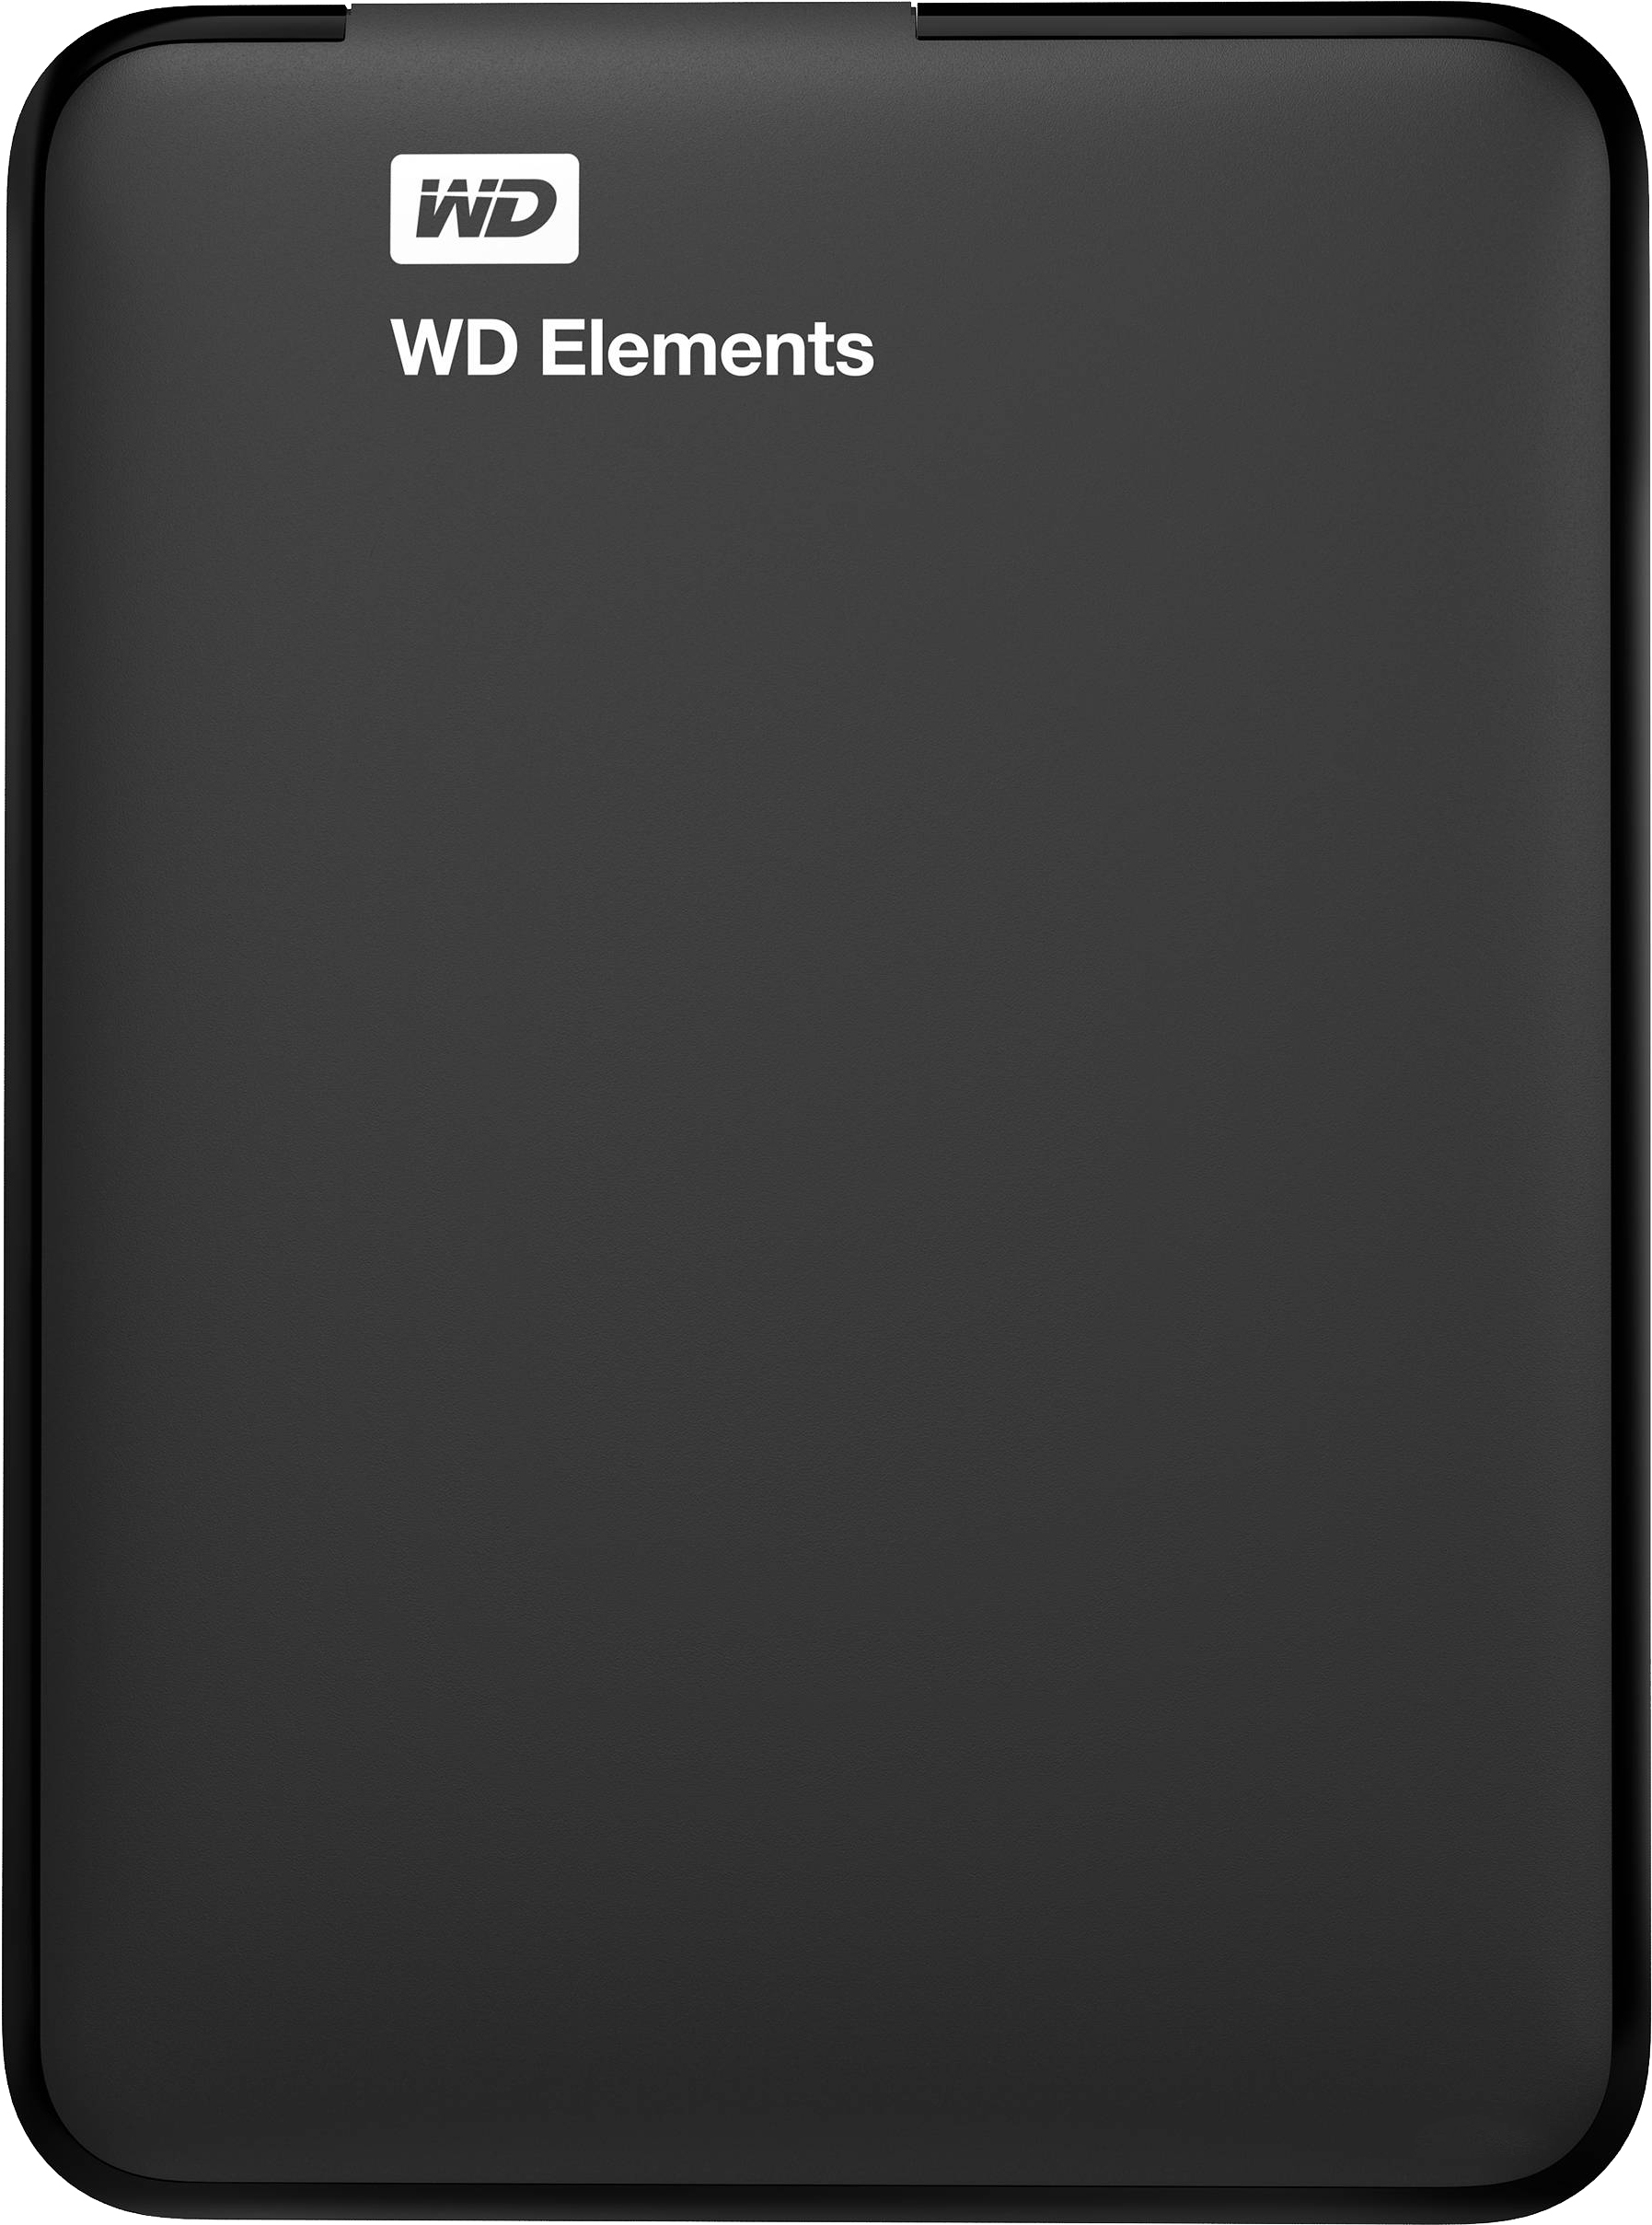 Купить Жесткий диск Western Digital Elements 1TB WDBUZG0010BBK-WESN 2.5 USB 3.0 External Black